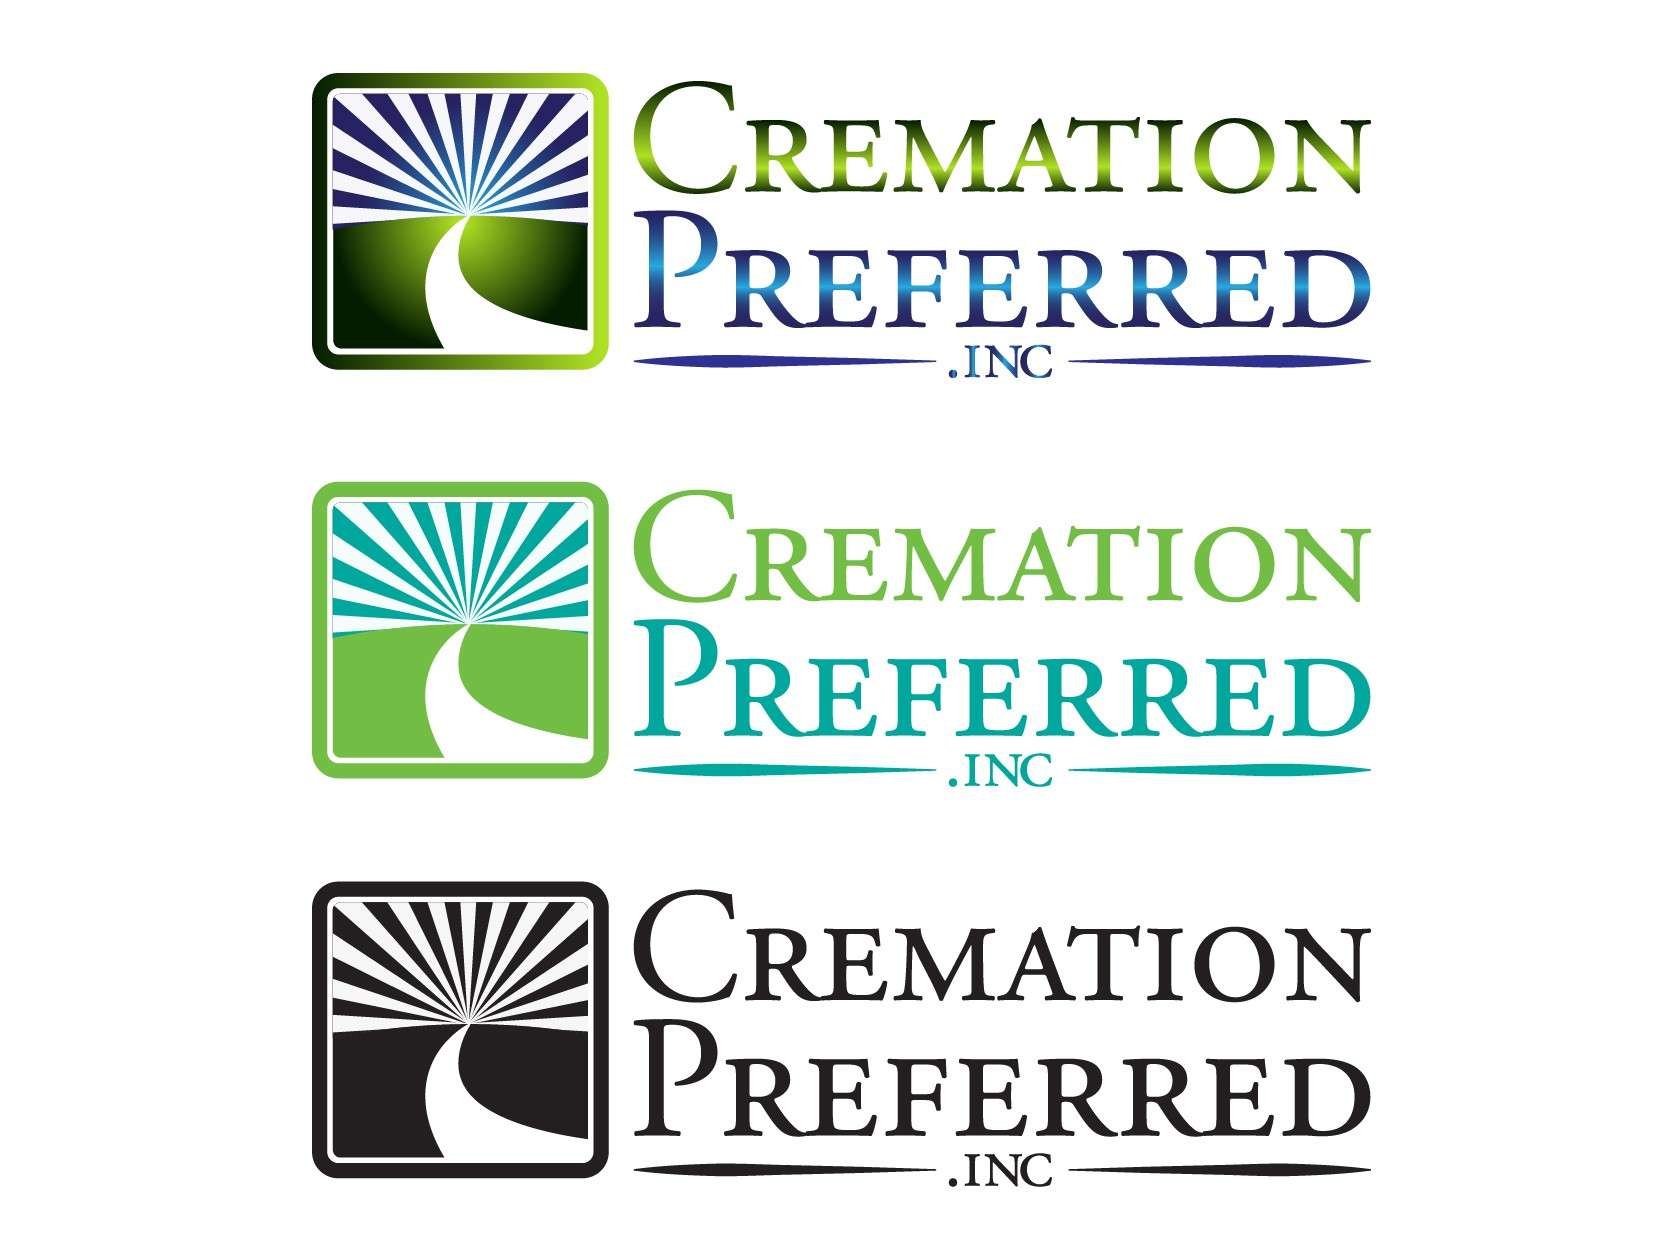 Simple/Direct Cremation Business Logo